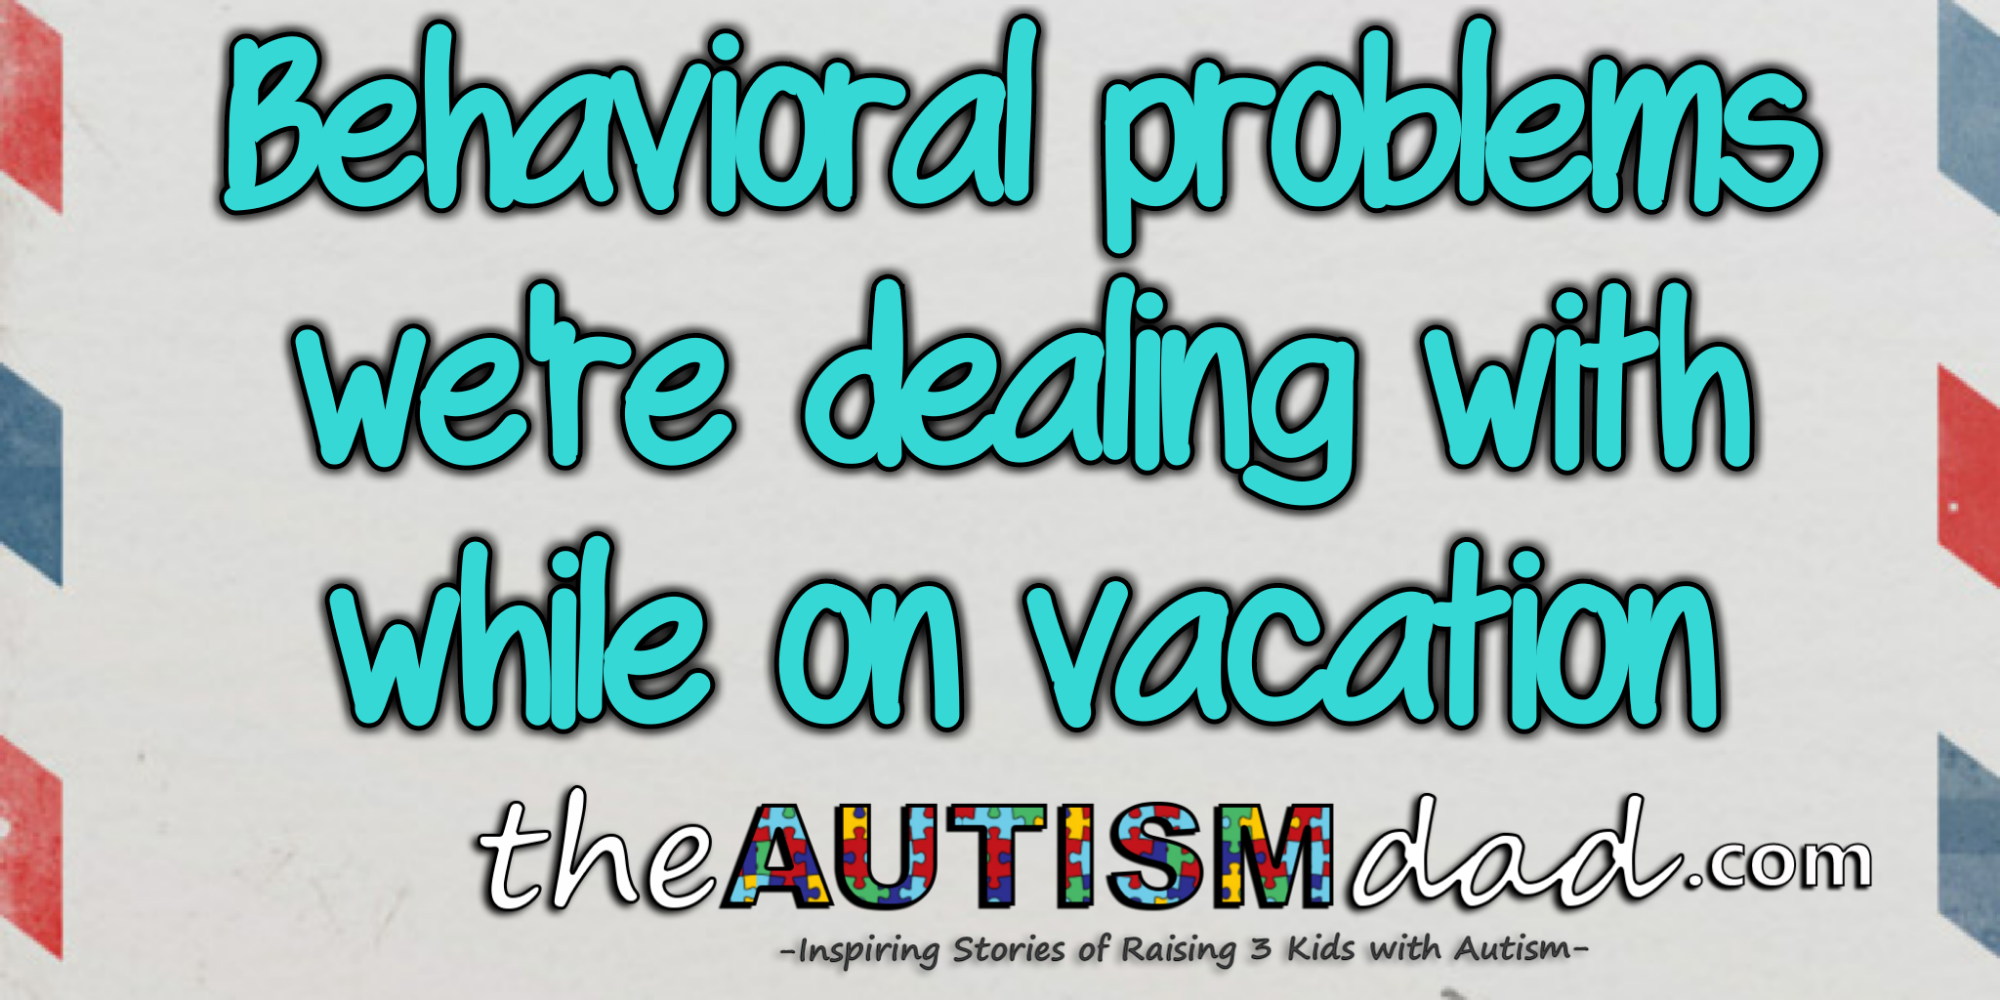 Behavioral problems we're dealing with while on vacation